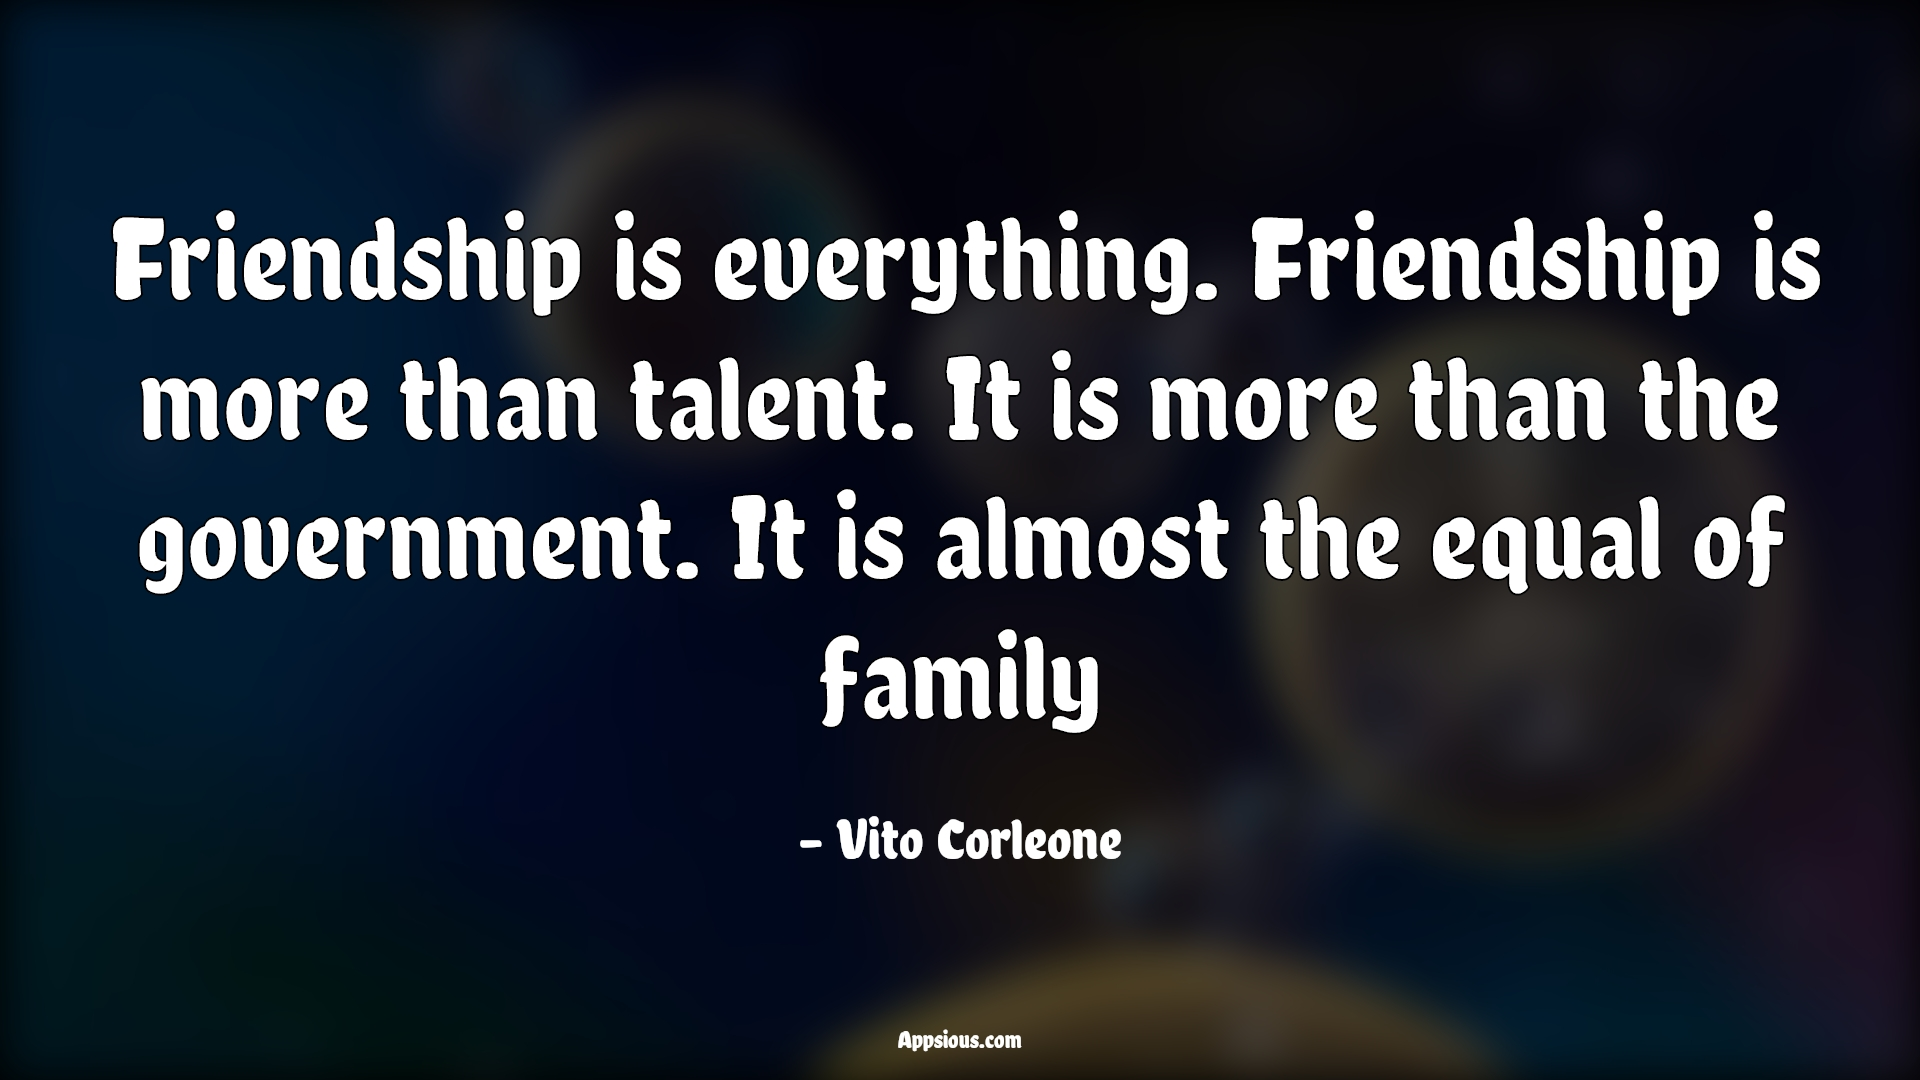 Friendship is everything. Friendship is more than talent. It is more than the government. It is almost the equal of family